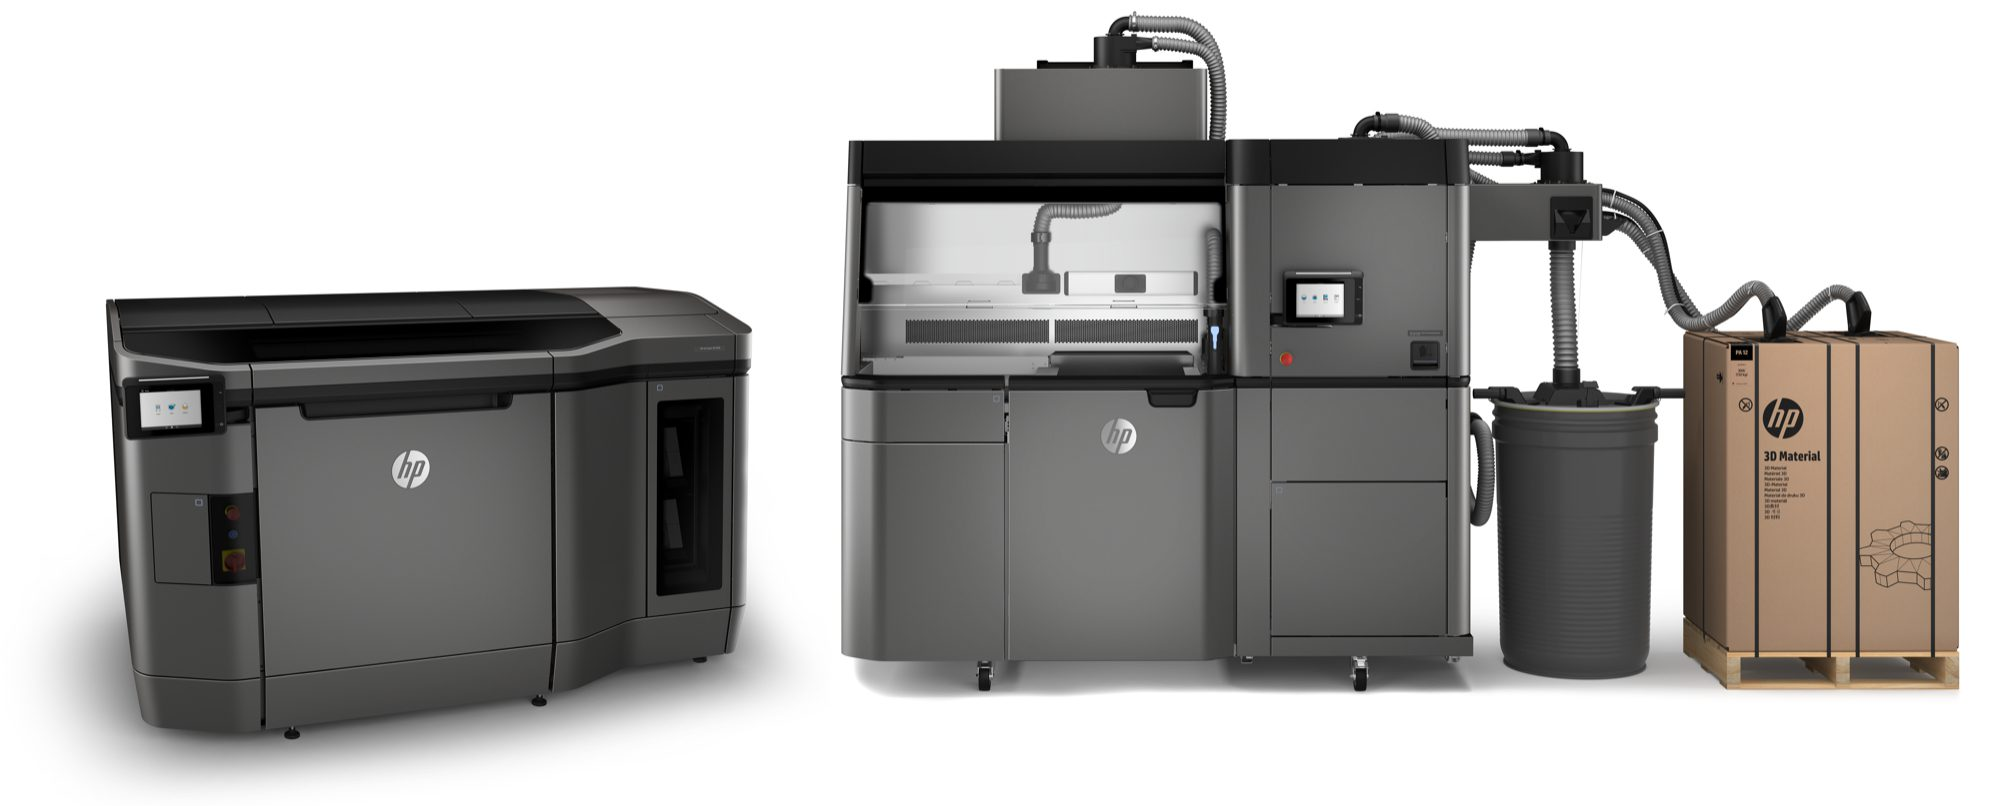 HP Jet Fusion 3D 4200 Printing Solution, Build Unit inside Processing Station